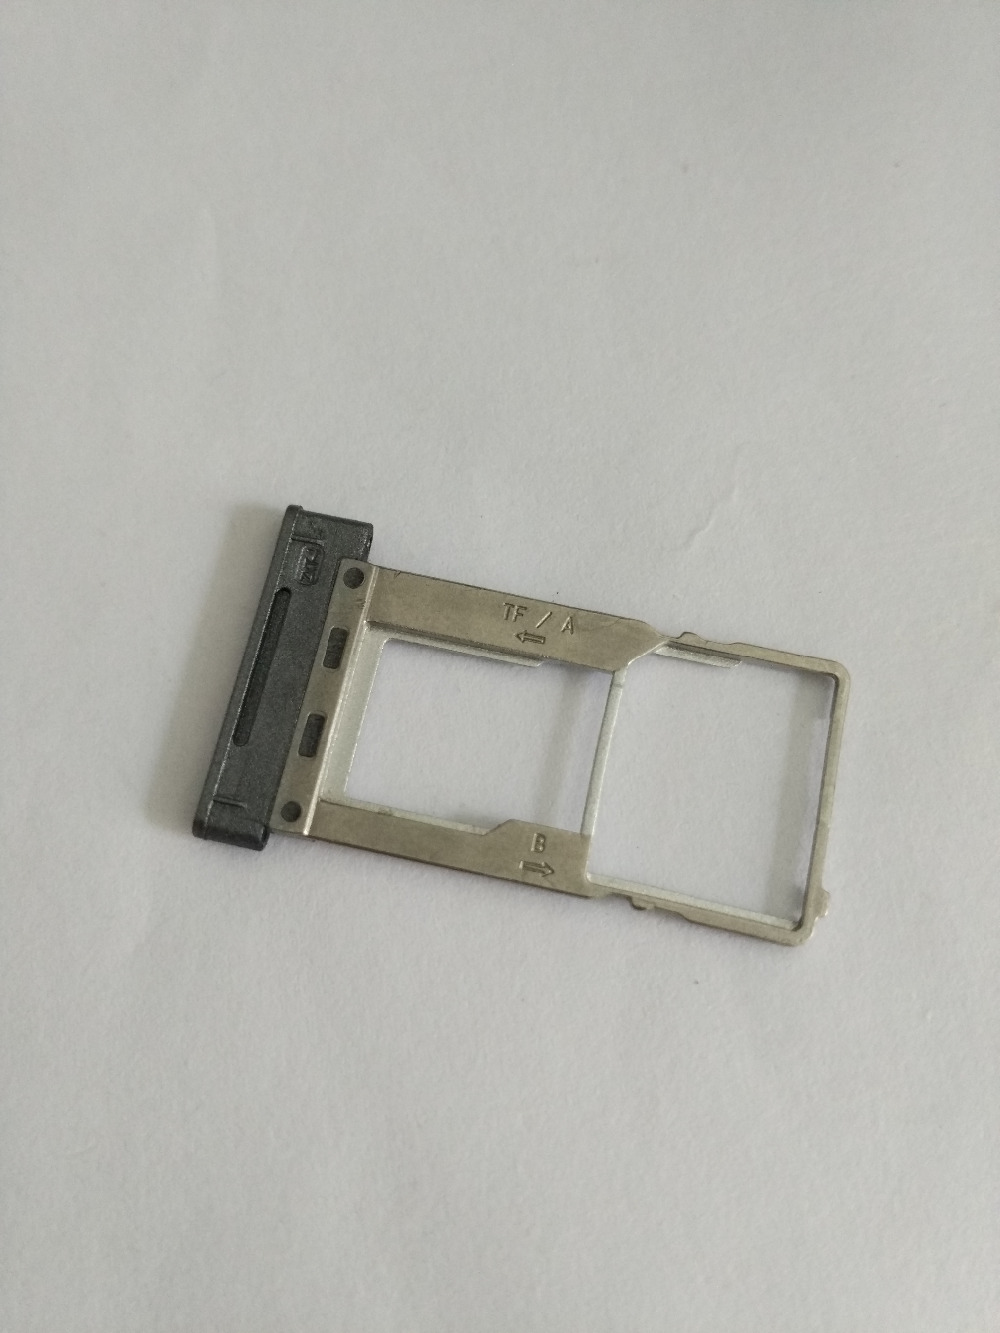 Elephone M1 SIM Tray Sim Card Holder Slot Used+ Replacement Parts for Elephone M1 phone Free shipping +Tracking